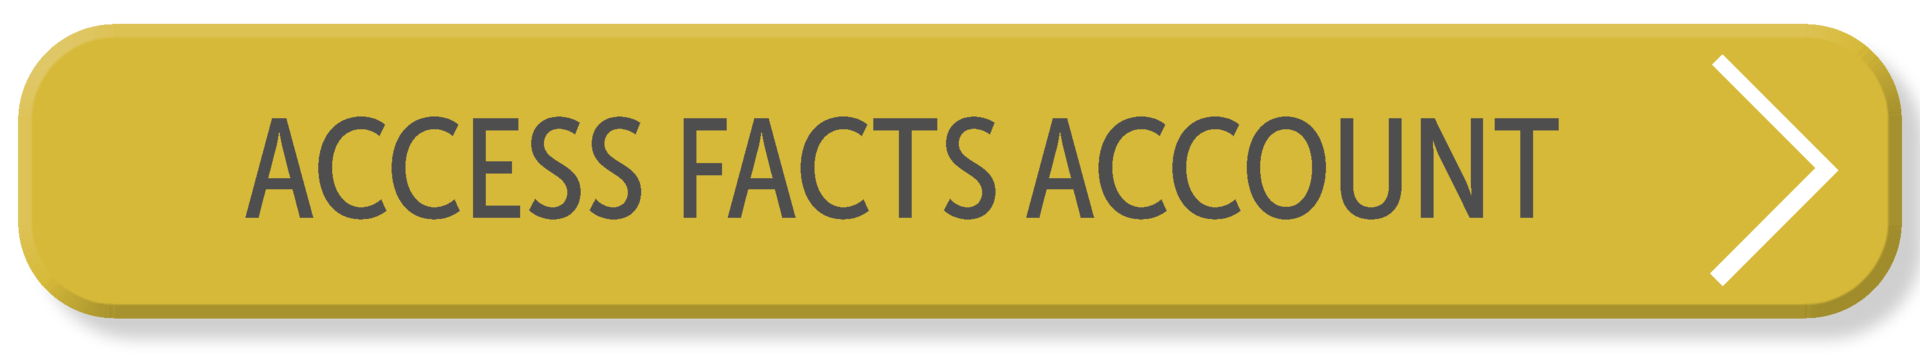 Create a FACTS account!